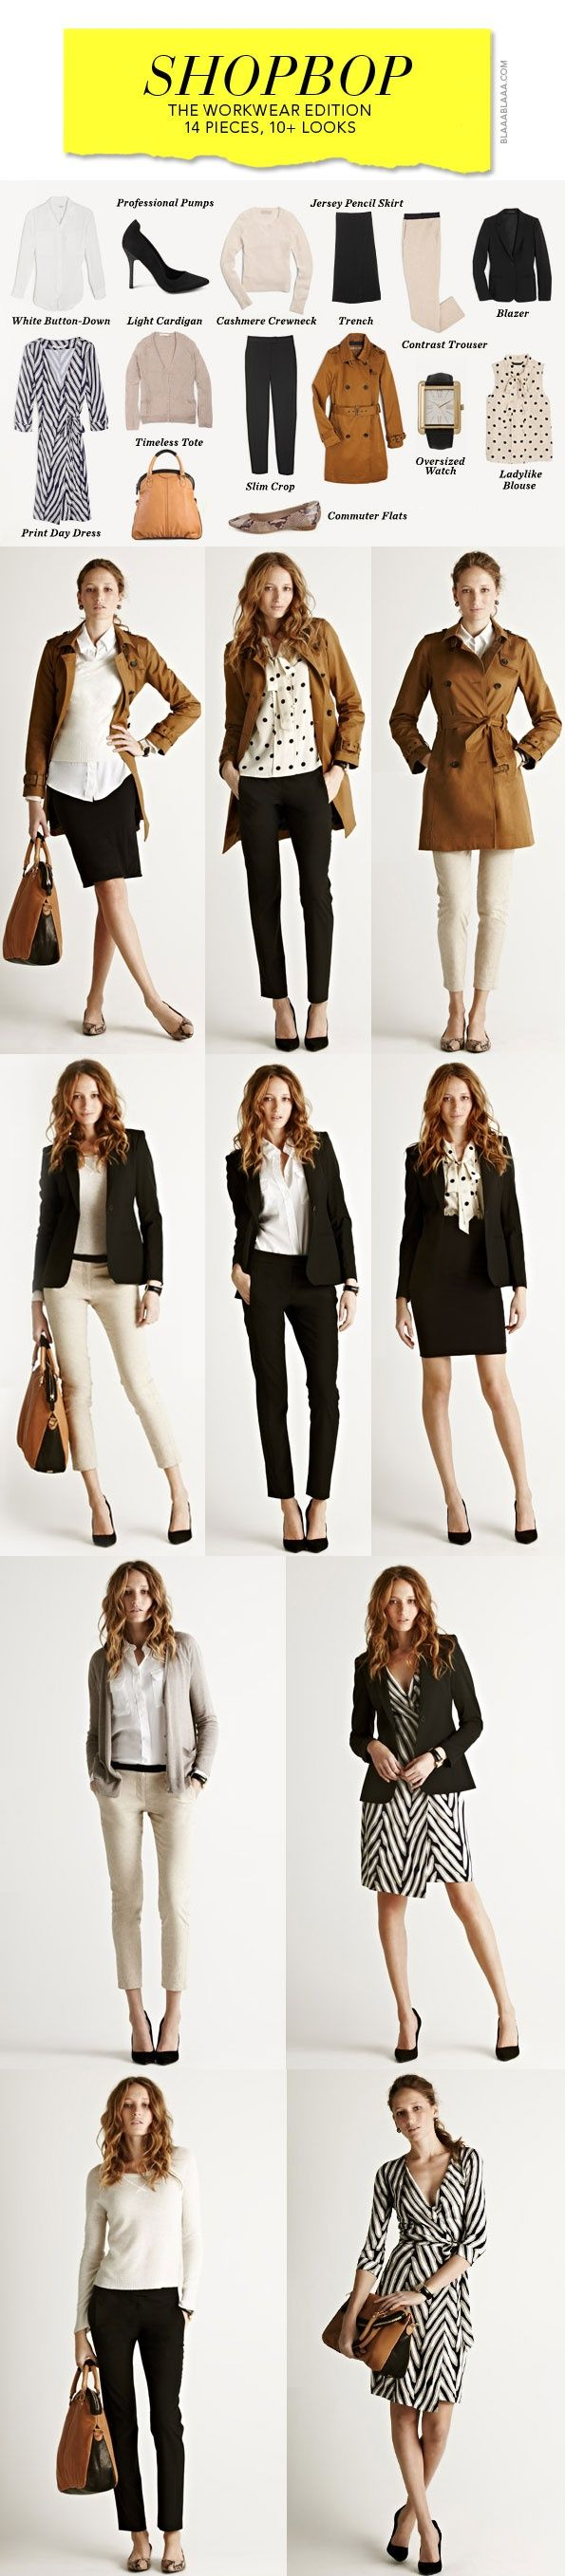 larisoltd.com   Women outfits from morning to evening   Fashion ...